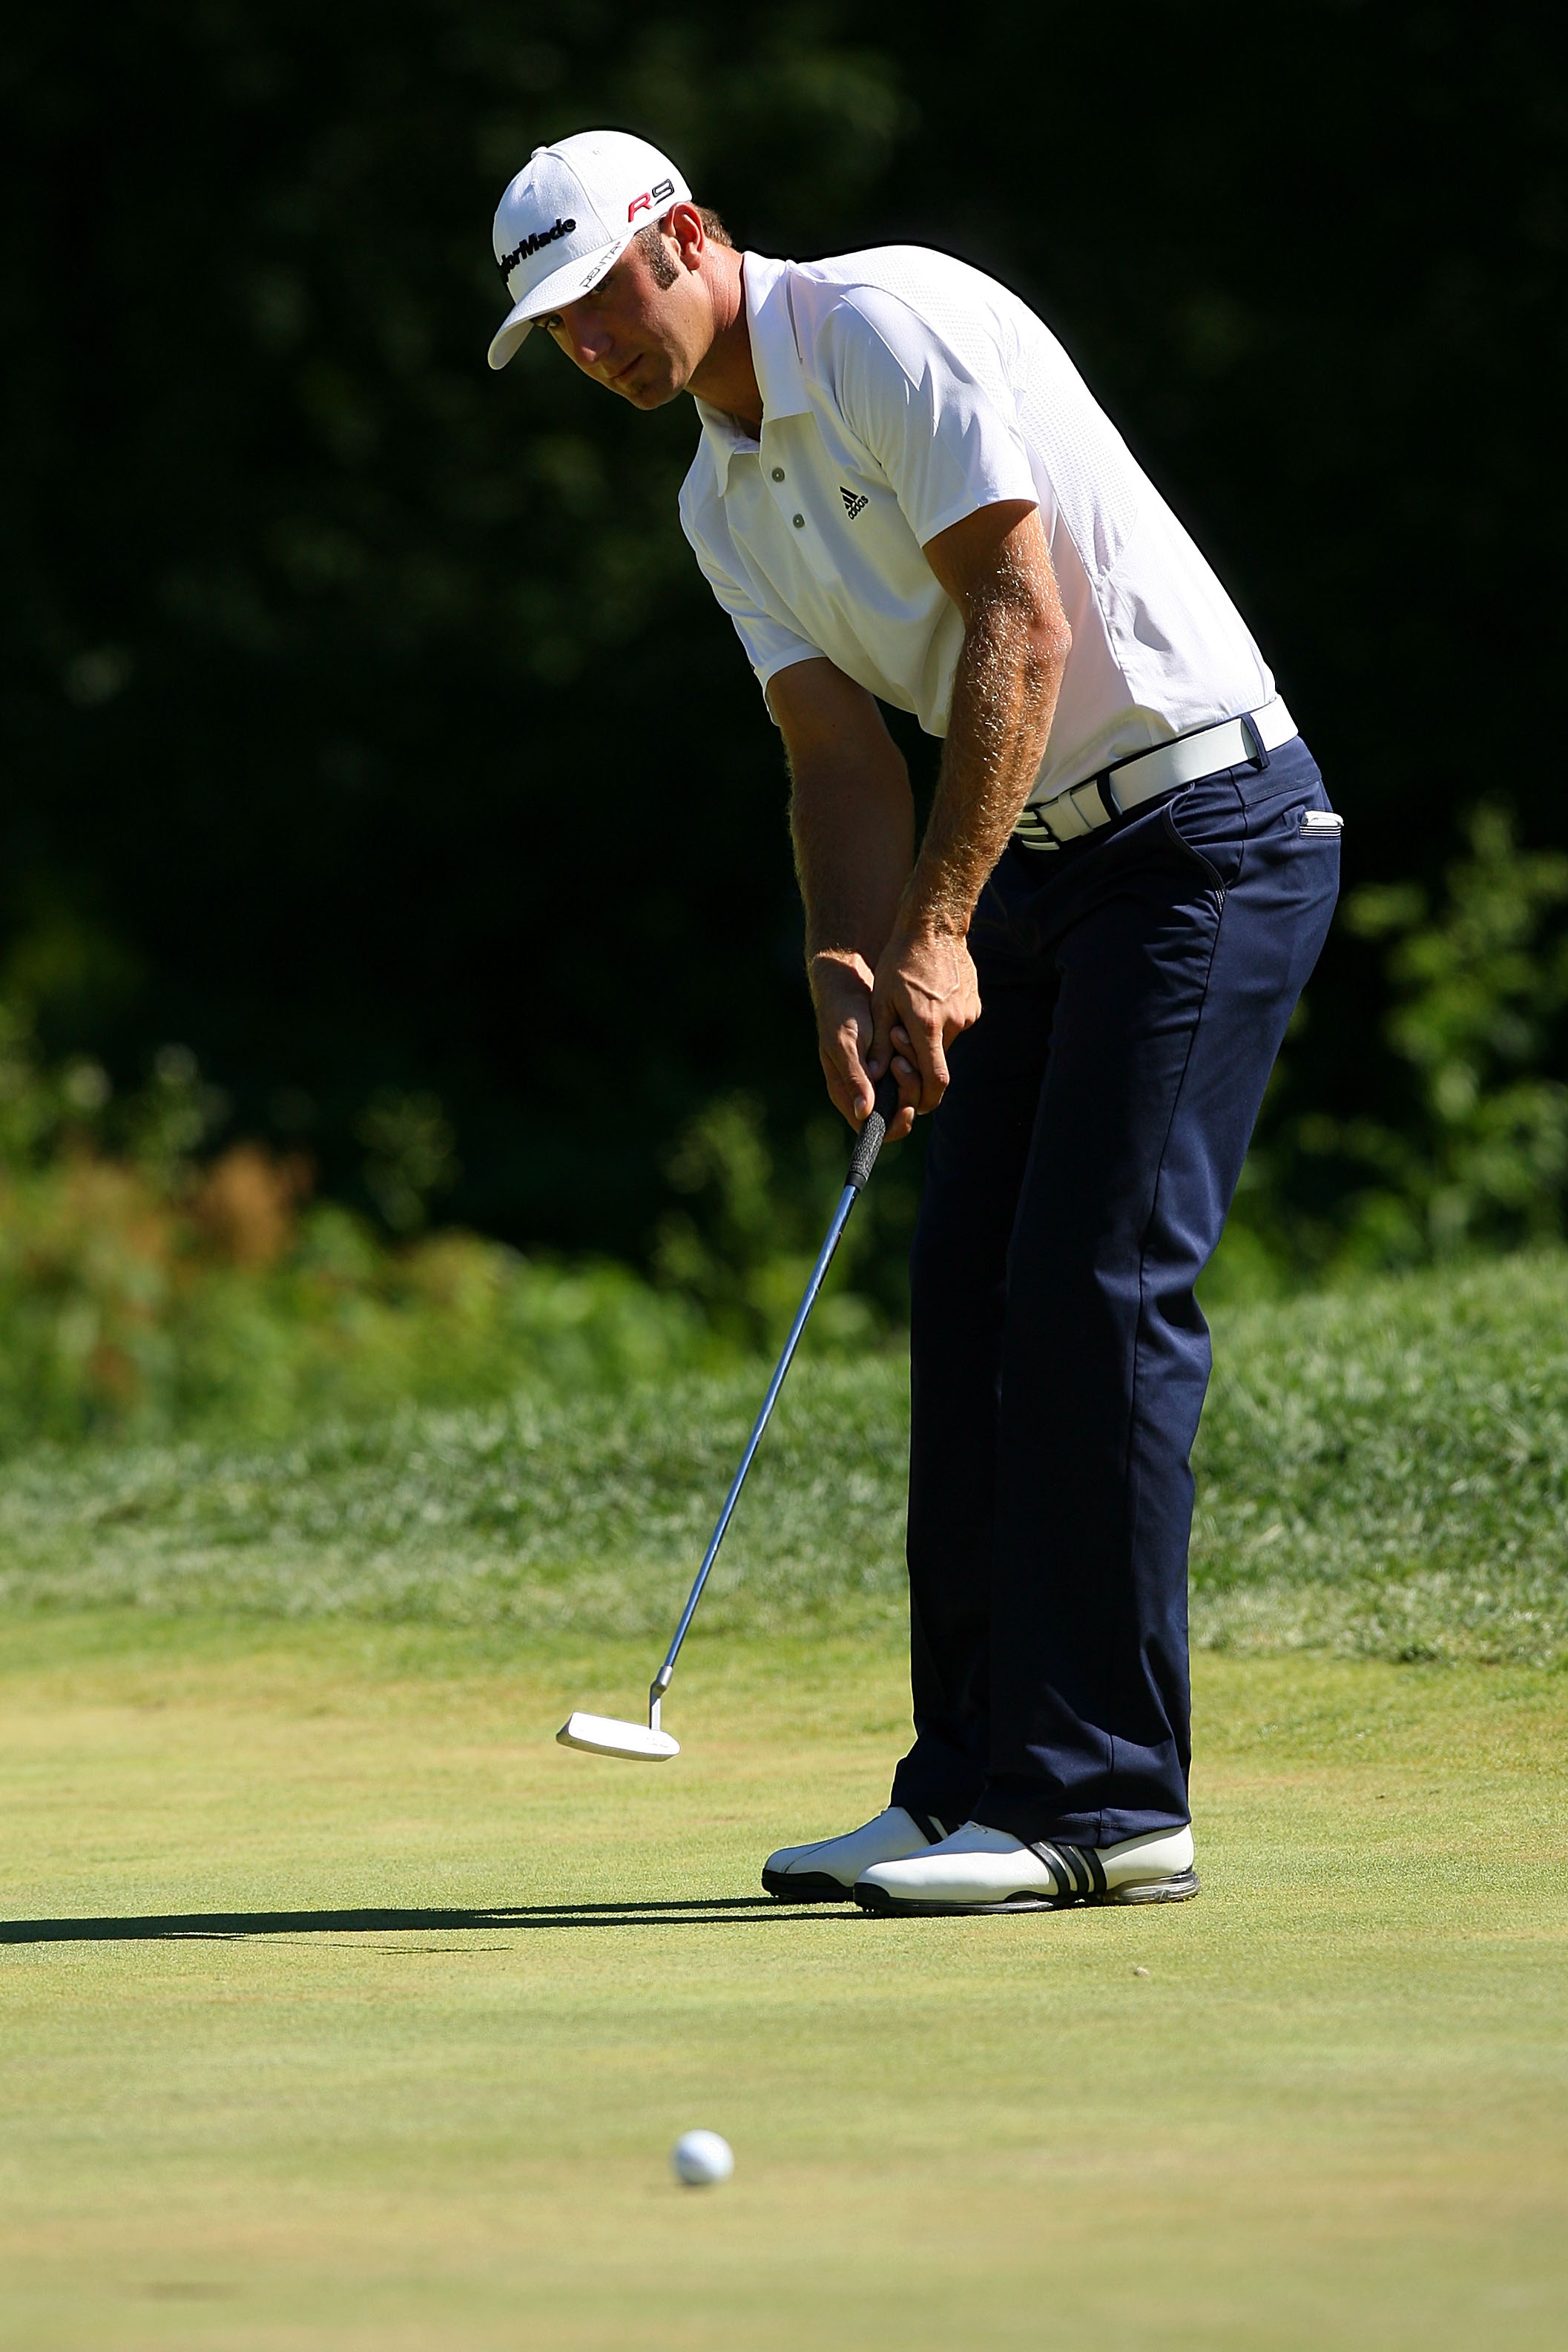 PARAMUS, NJ - AUGUST 29:  Dustin Johnson attempts a putt on the fourth hole green during the final round of The Barclays at the Ridgewood Country Club on August 29, 2010 in Paramus, New Jersey.  (Photo by Hunter Martin/Getty Images)